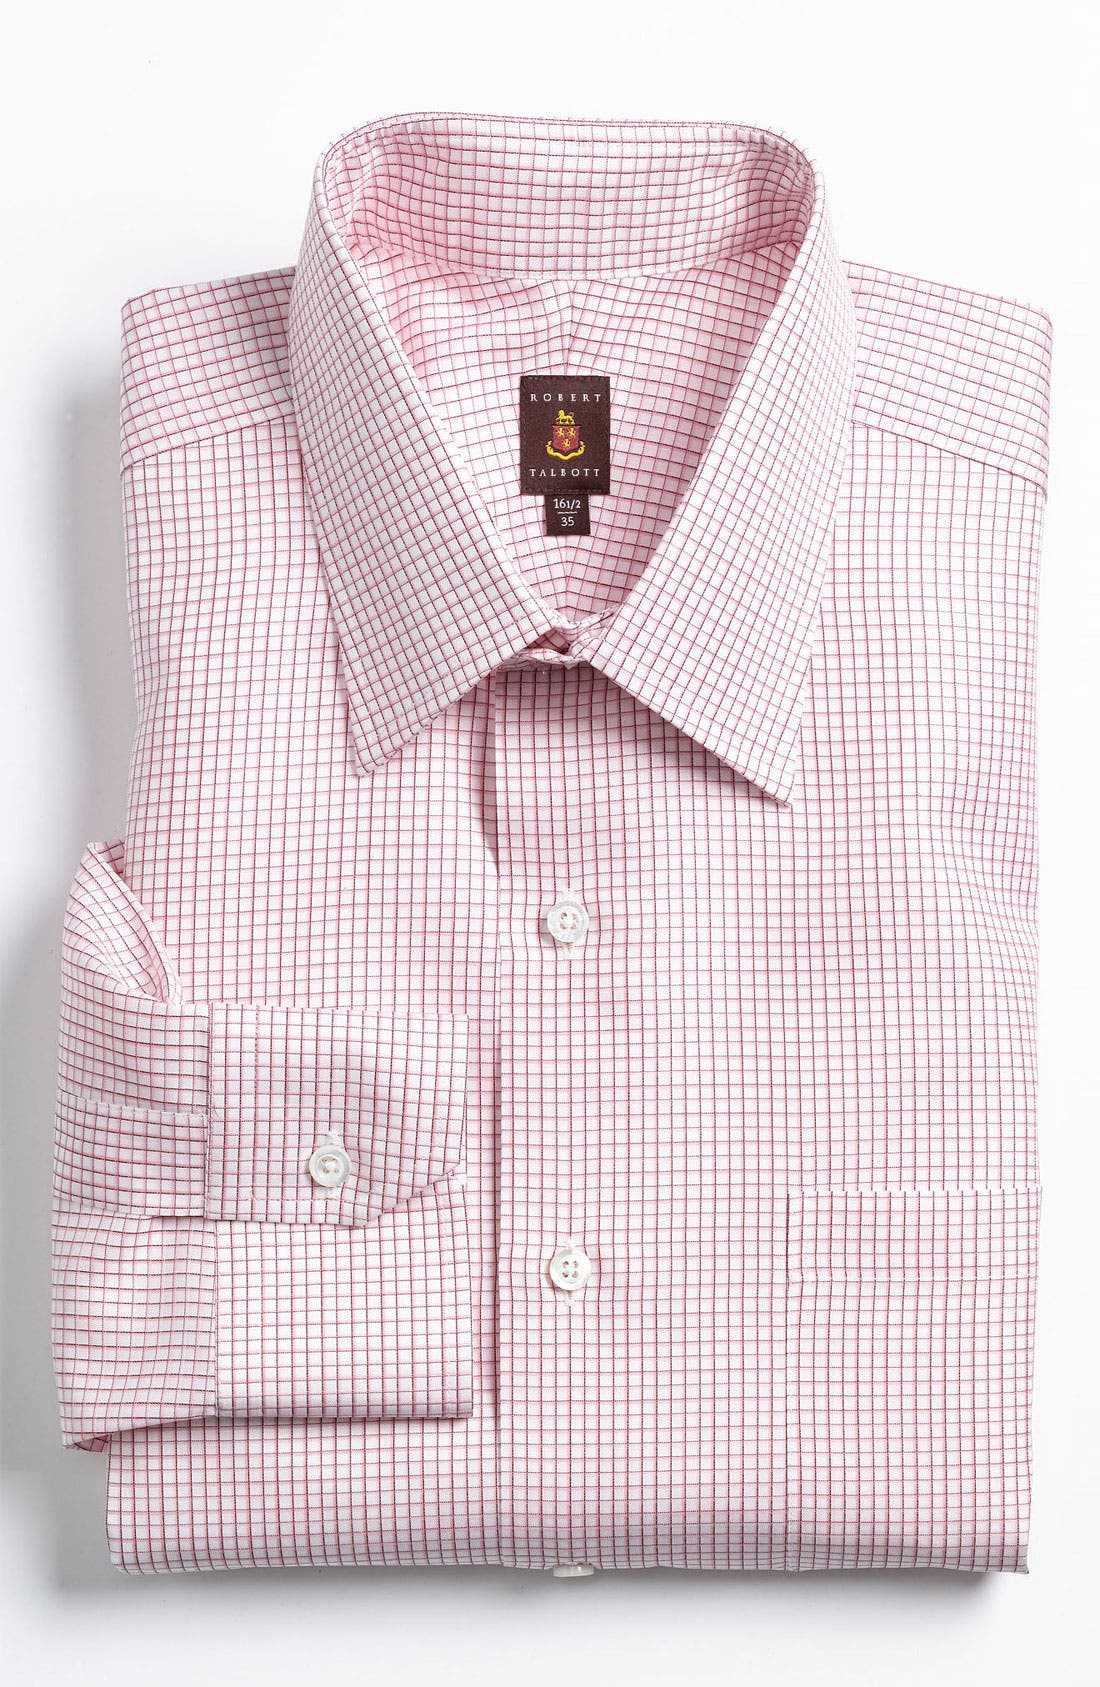 Main Image - Robert Talbott Classic Fit Dress Shirt